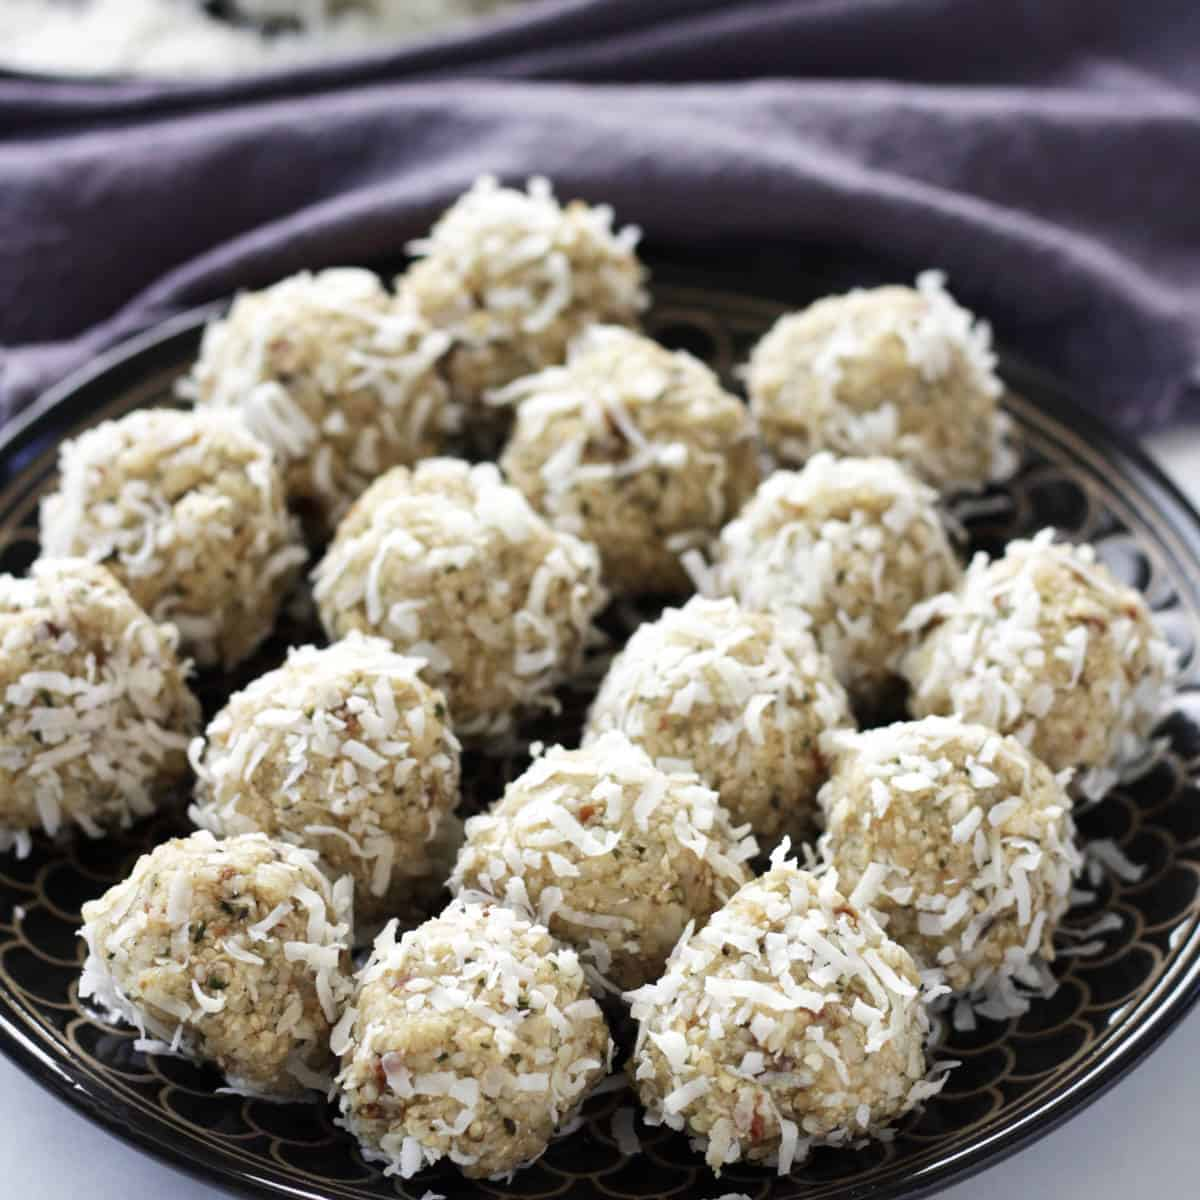 rows of golden balls coated in flaked coconut sitting on a black plate in front of lavender napkin